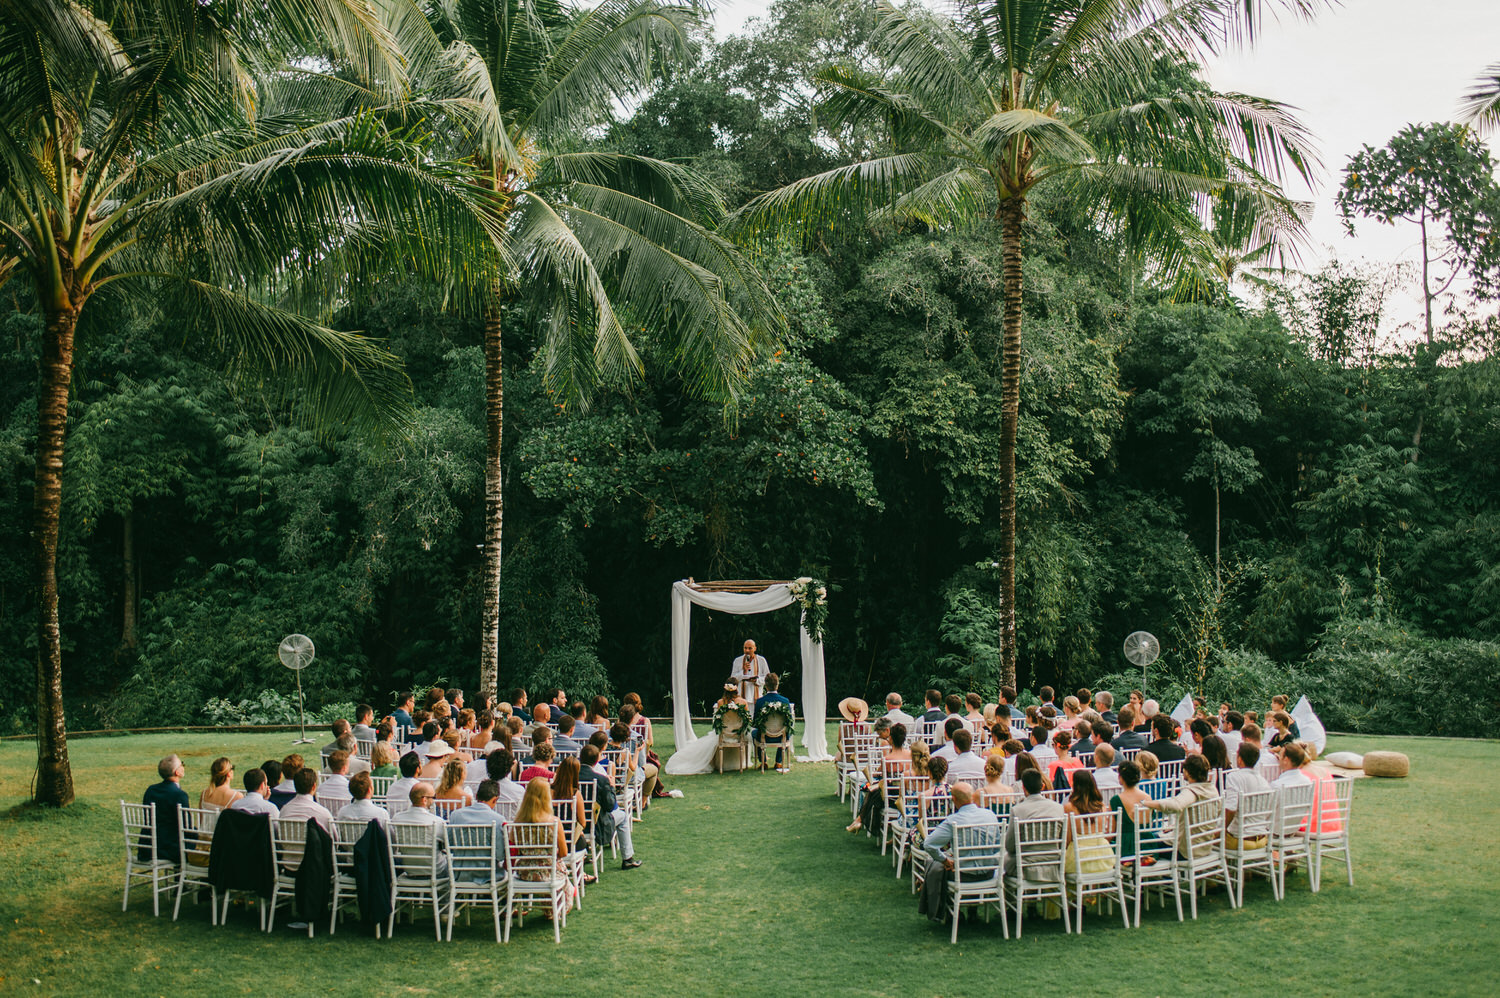 bali-wedding-destination-wedding-in-bali-bali-photographer-the-sanctuary-villa-profesional-bali-wedding-photographer-diktatphotography-clement-armine-wedding-52